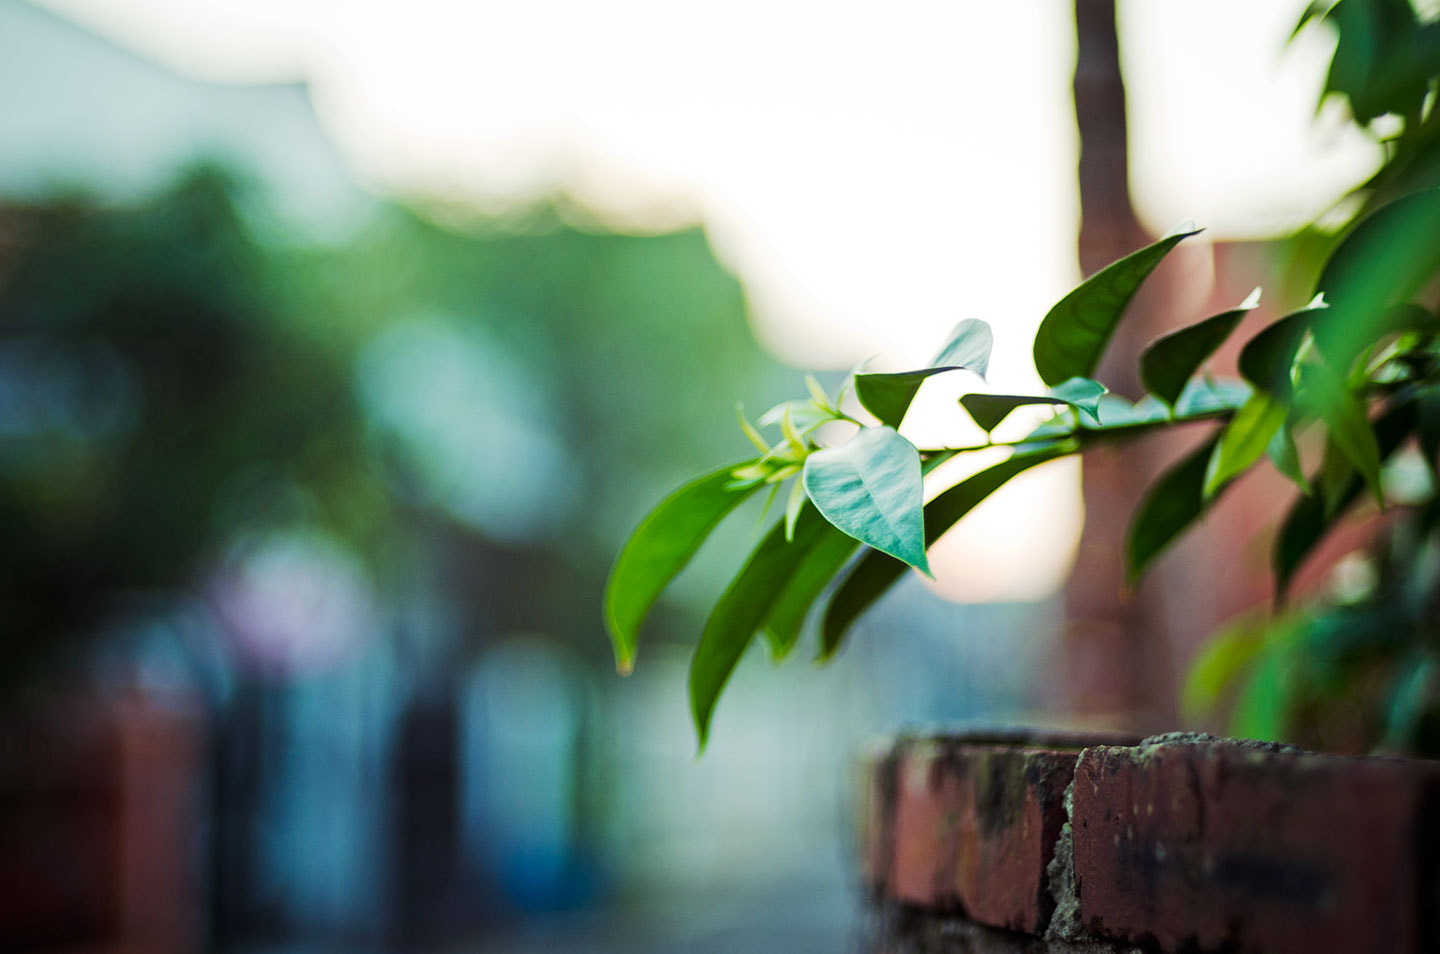 Photograph Tip by Bady qb on 500px